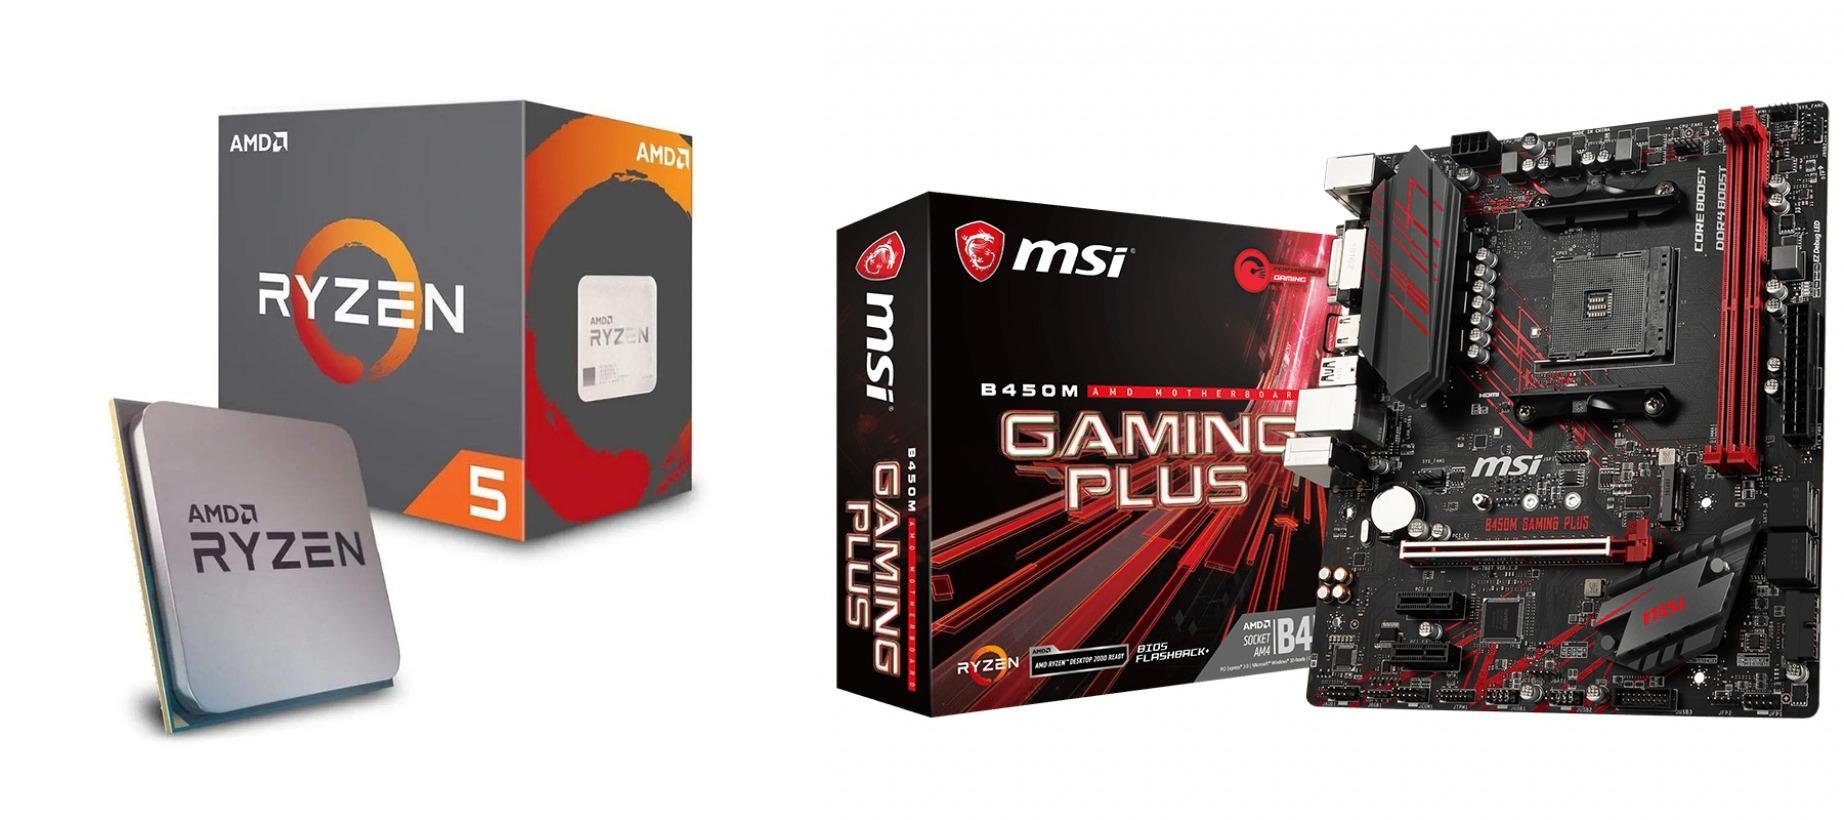 AMD Ryzen 5 2600 Processor with Wraith Stealth Cooler plus MSI B450m Gaming  Plus Motherboard Bundle